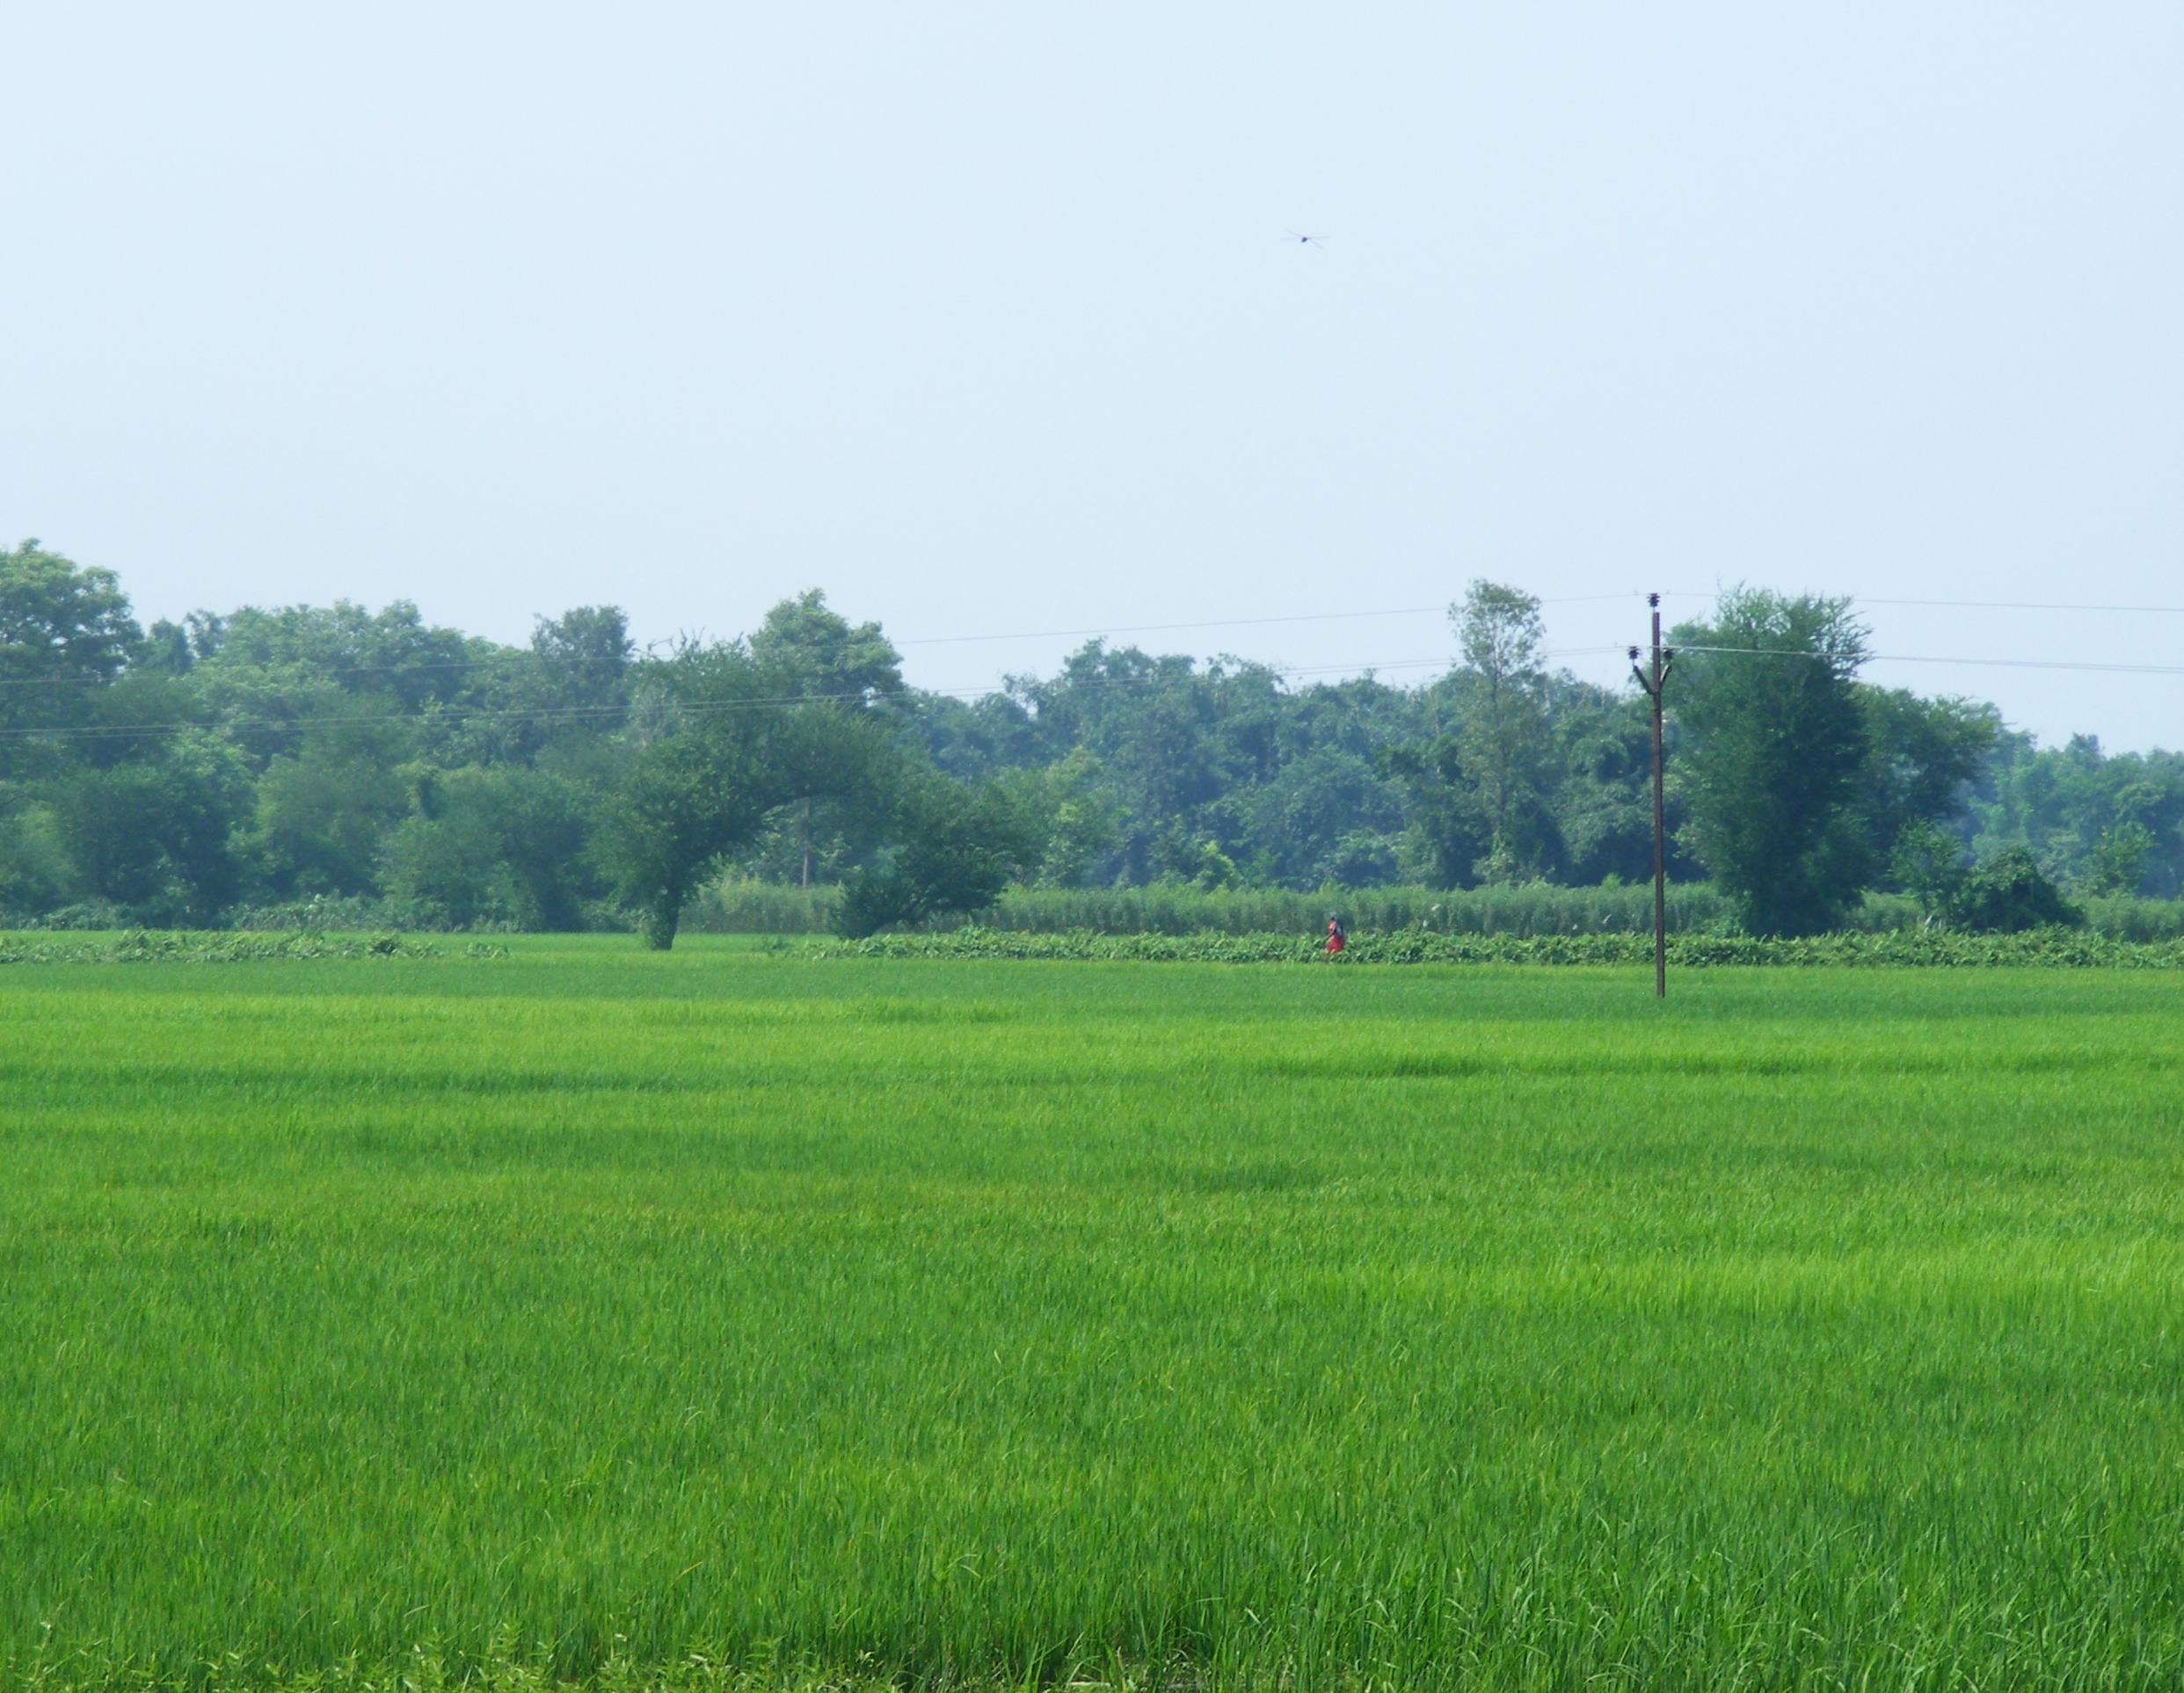 paddy field Download paddy field stock photos affordable and search from millions of royalty free images, photos and vectors thousands of images added daily.